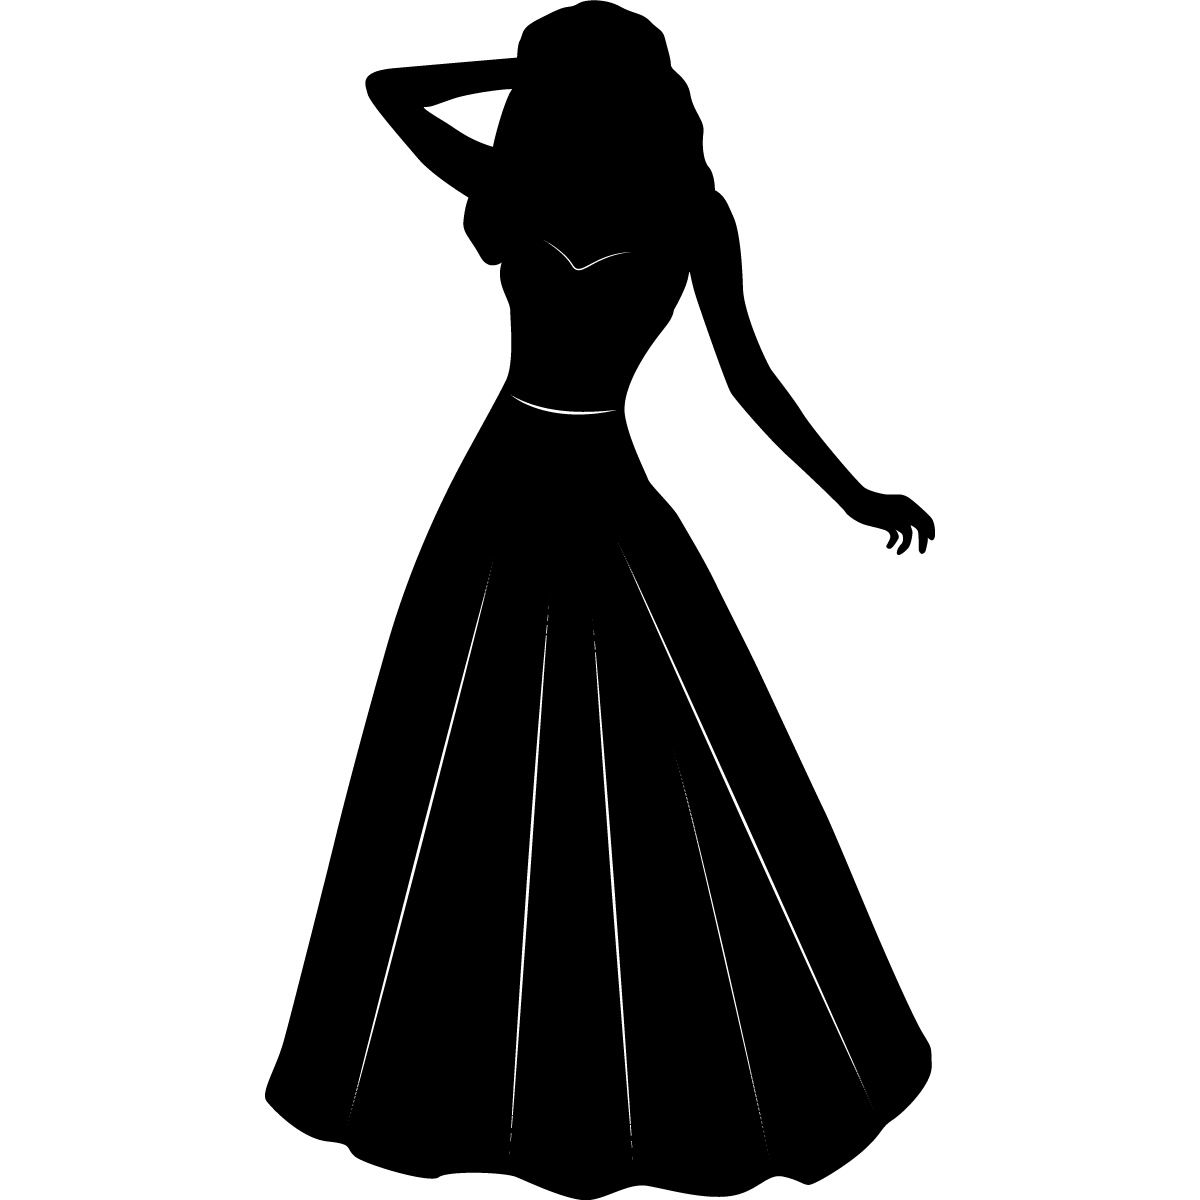 Princess Silhouette Kids Wall Art Stickers Wall Decal Transfers Clipart Best Clipart Best Princess Silhouette Disney Princess Silhouette Silhouette Free